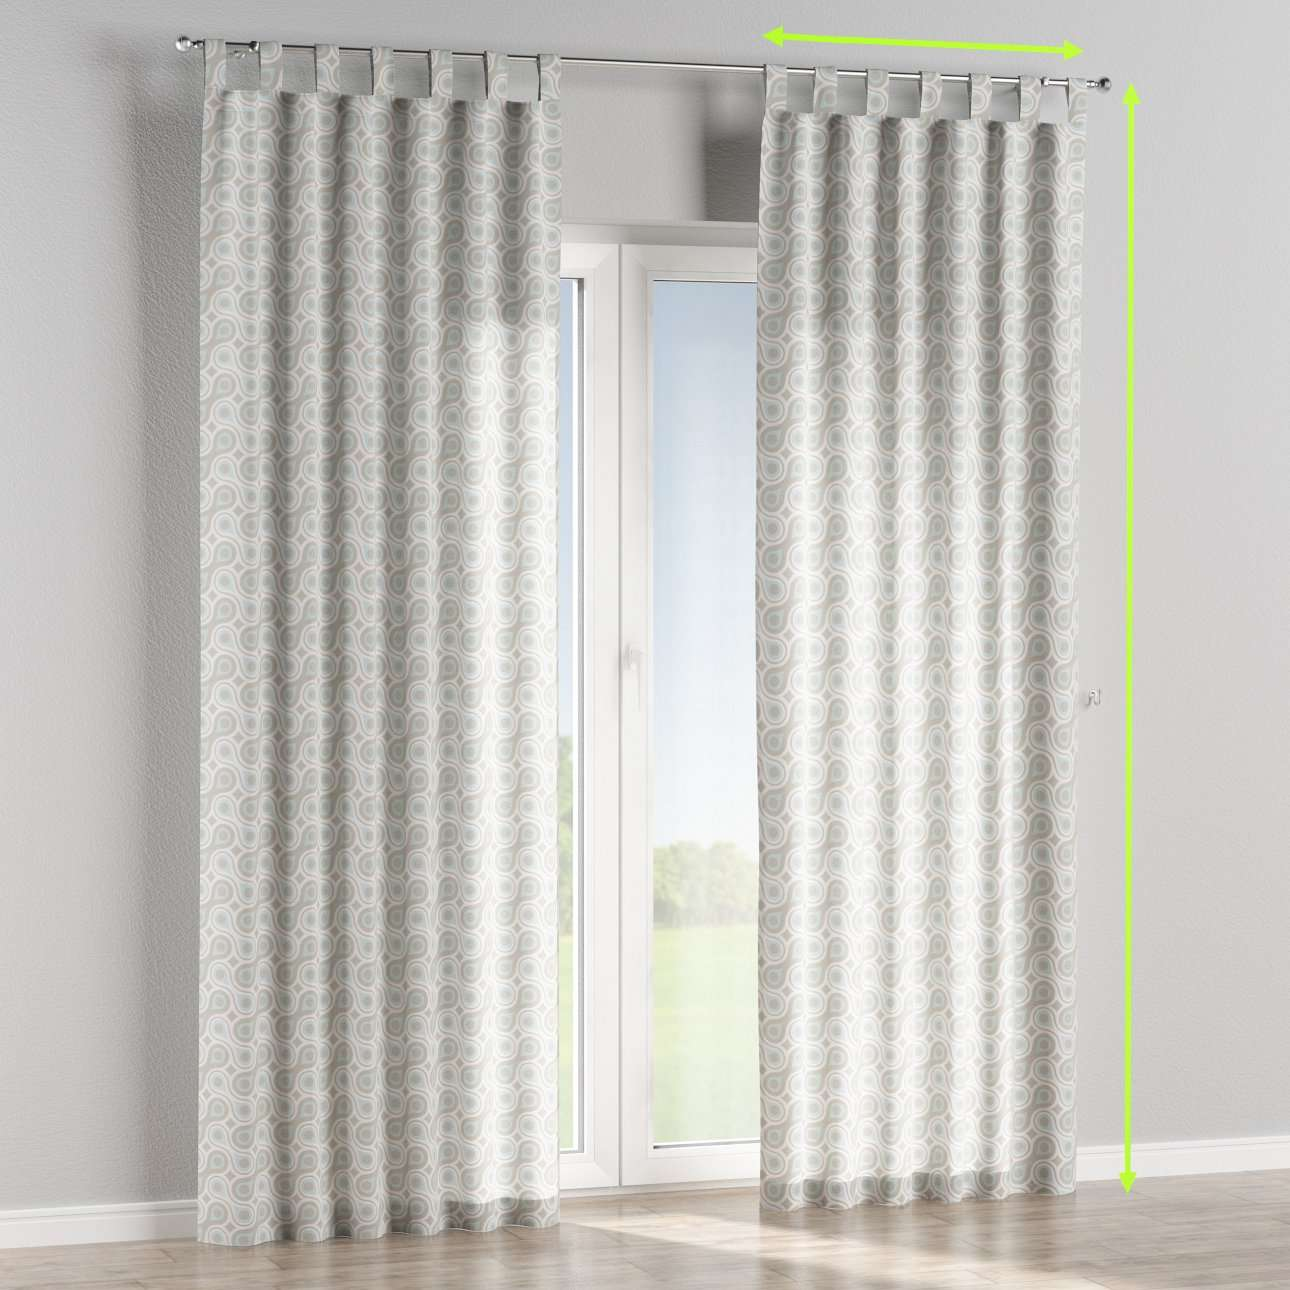 Tab top curtains in collection Flowers, fabric: 311-13